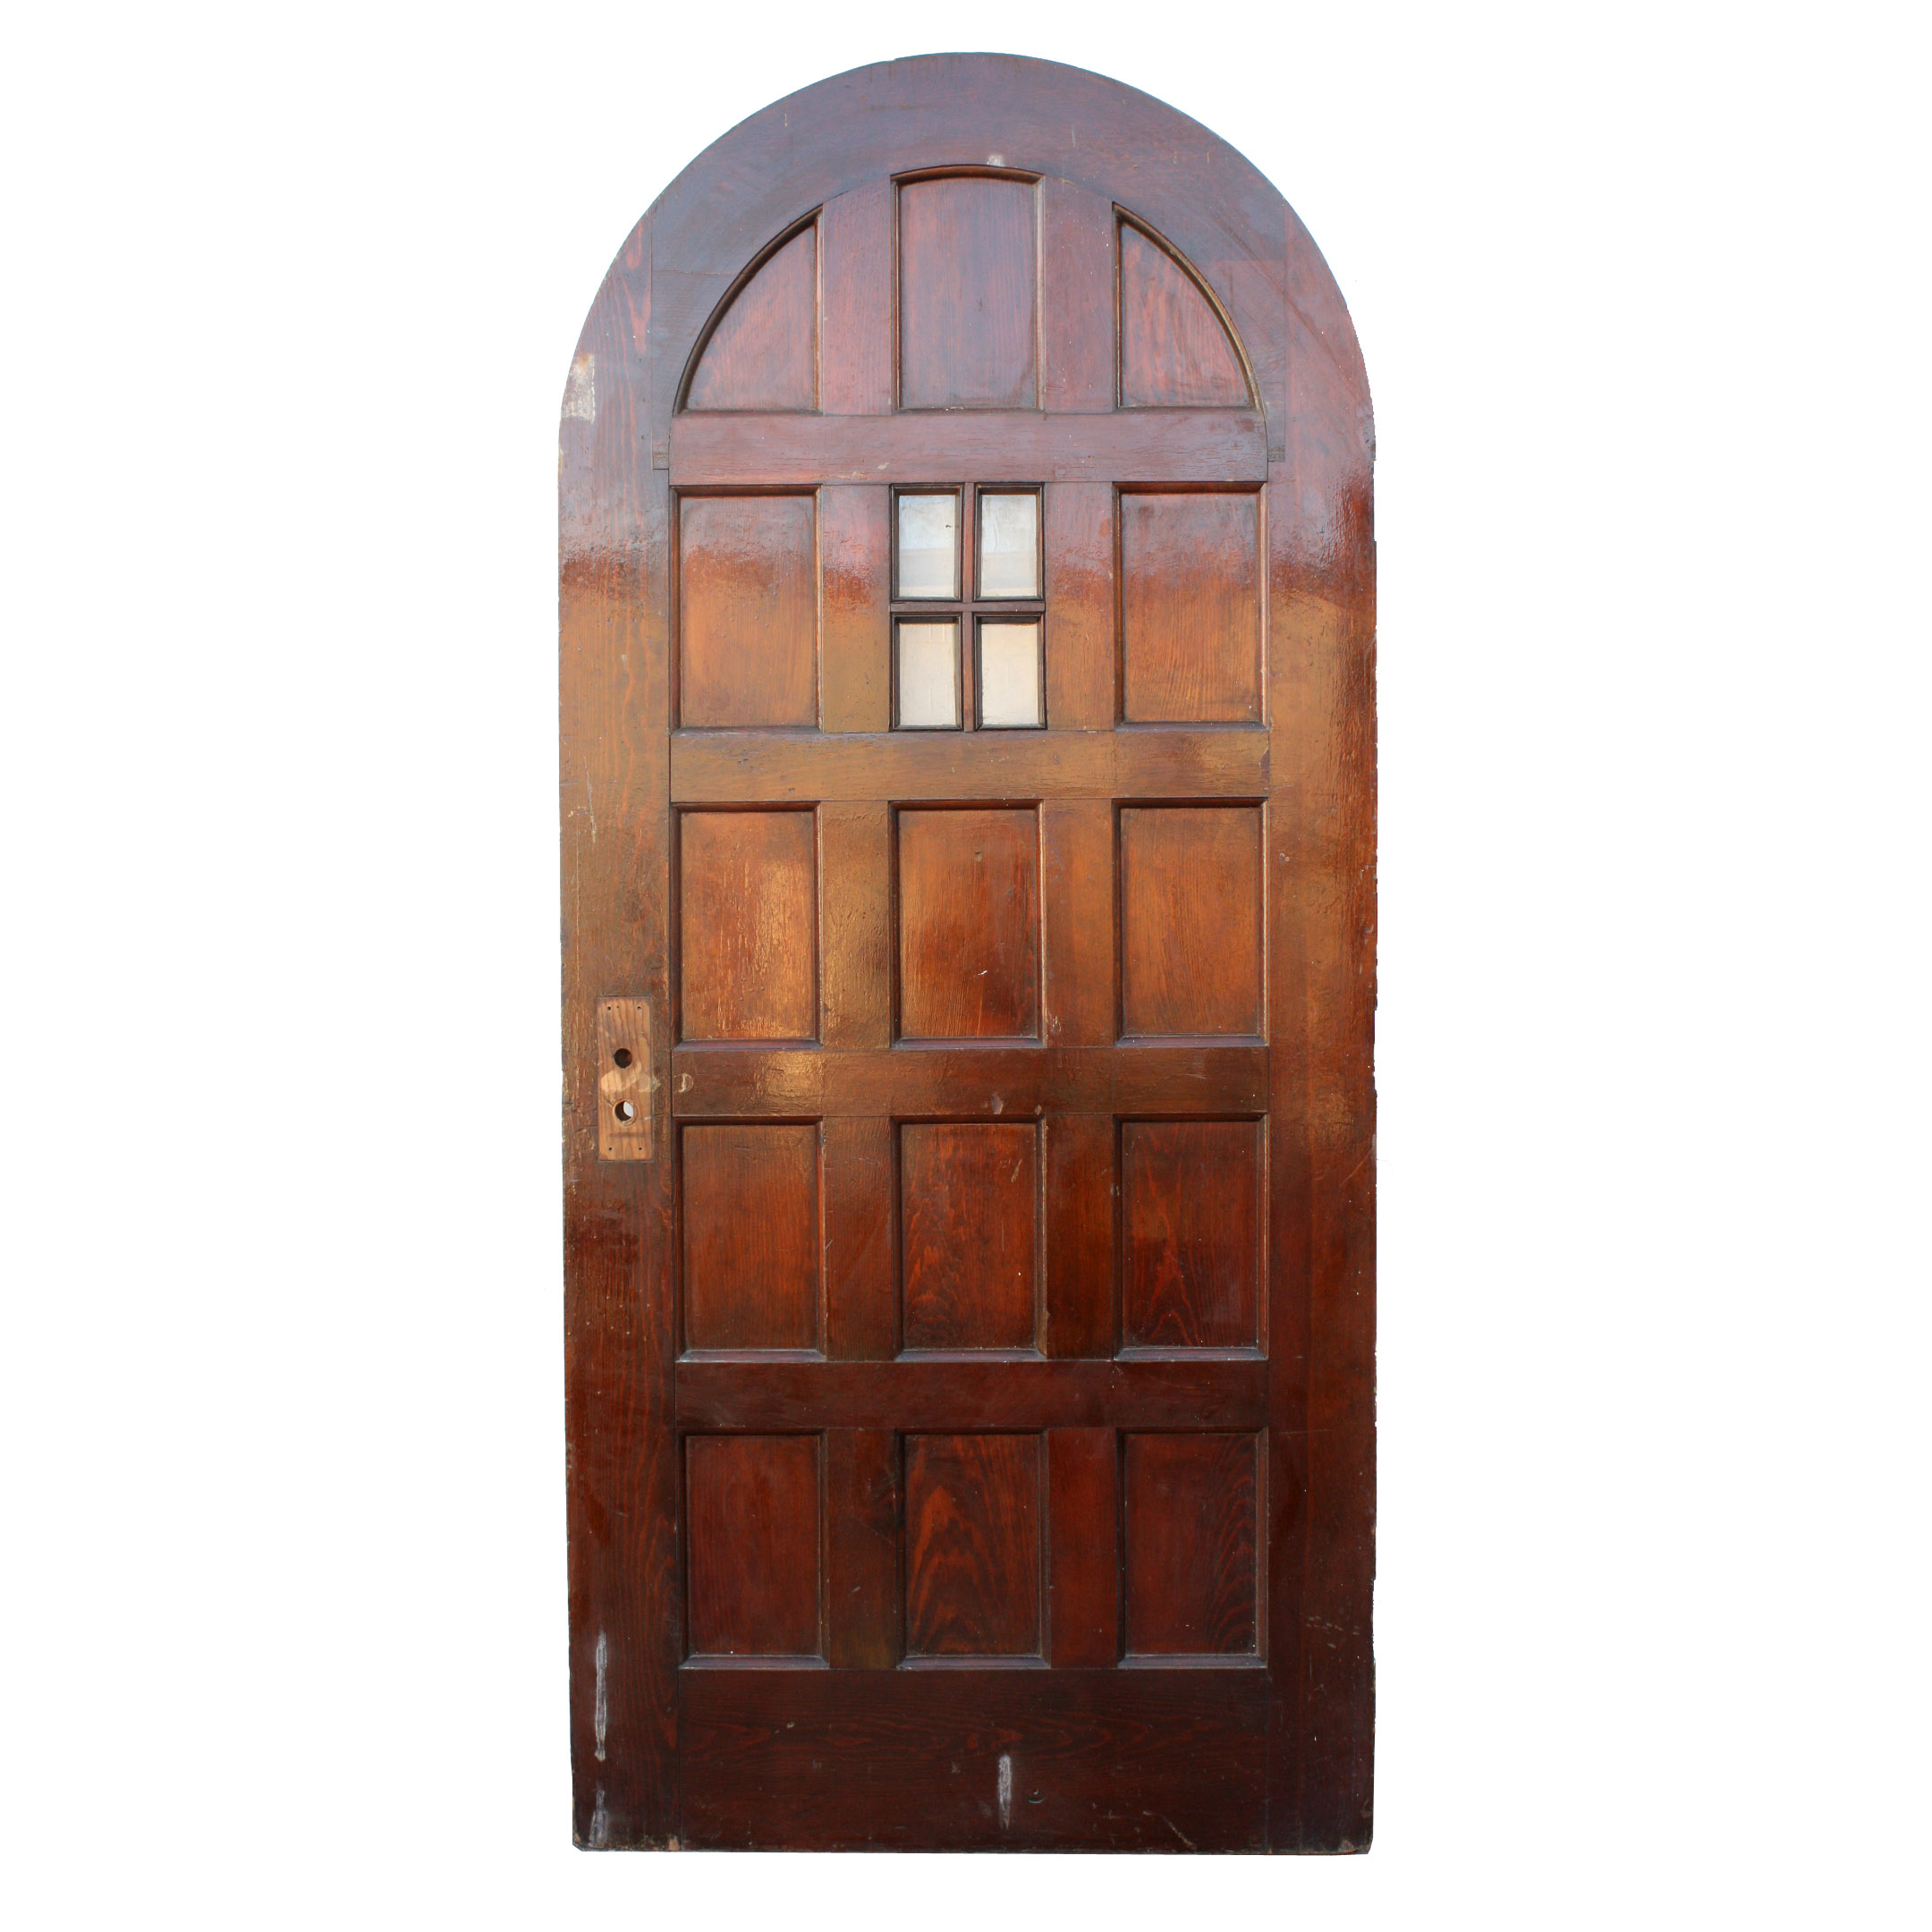 Antique exterior 36 arched door with panels and window for Exterior windows for sale